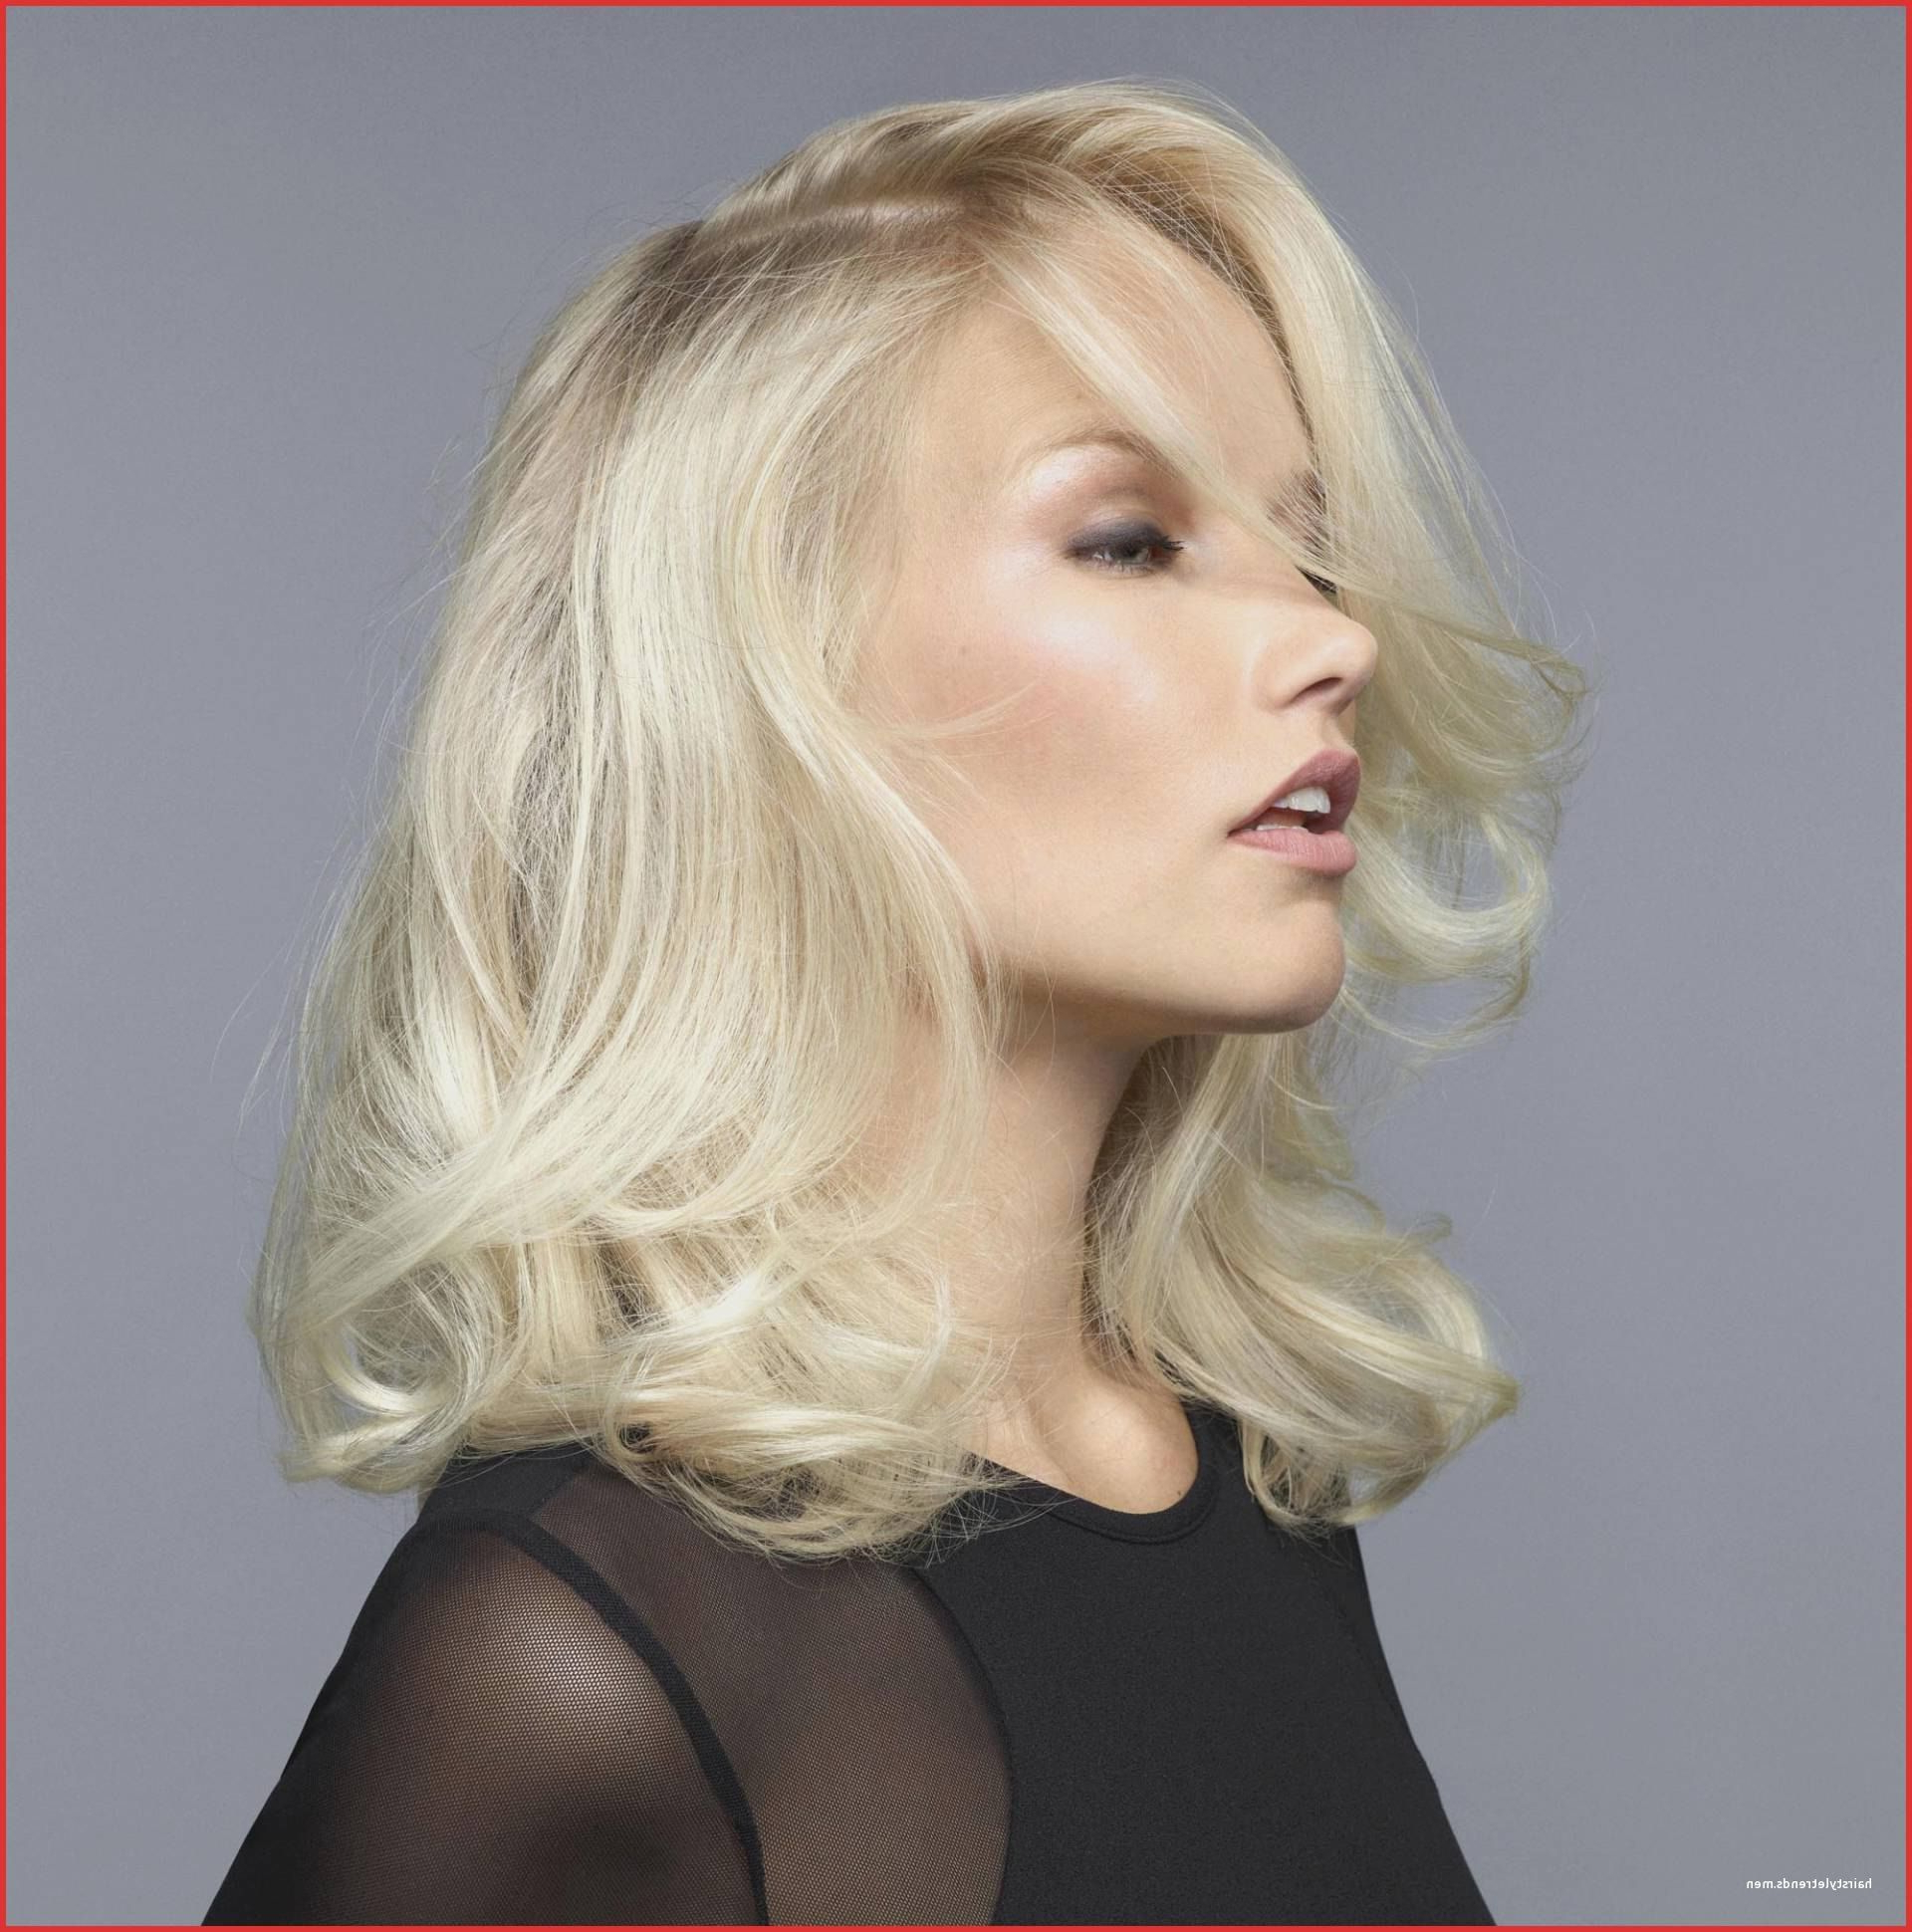 Hairstyles Ideas (View 12 of 20)